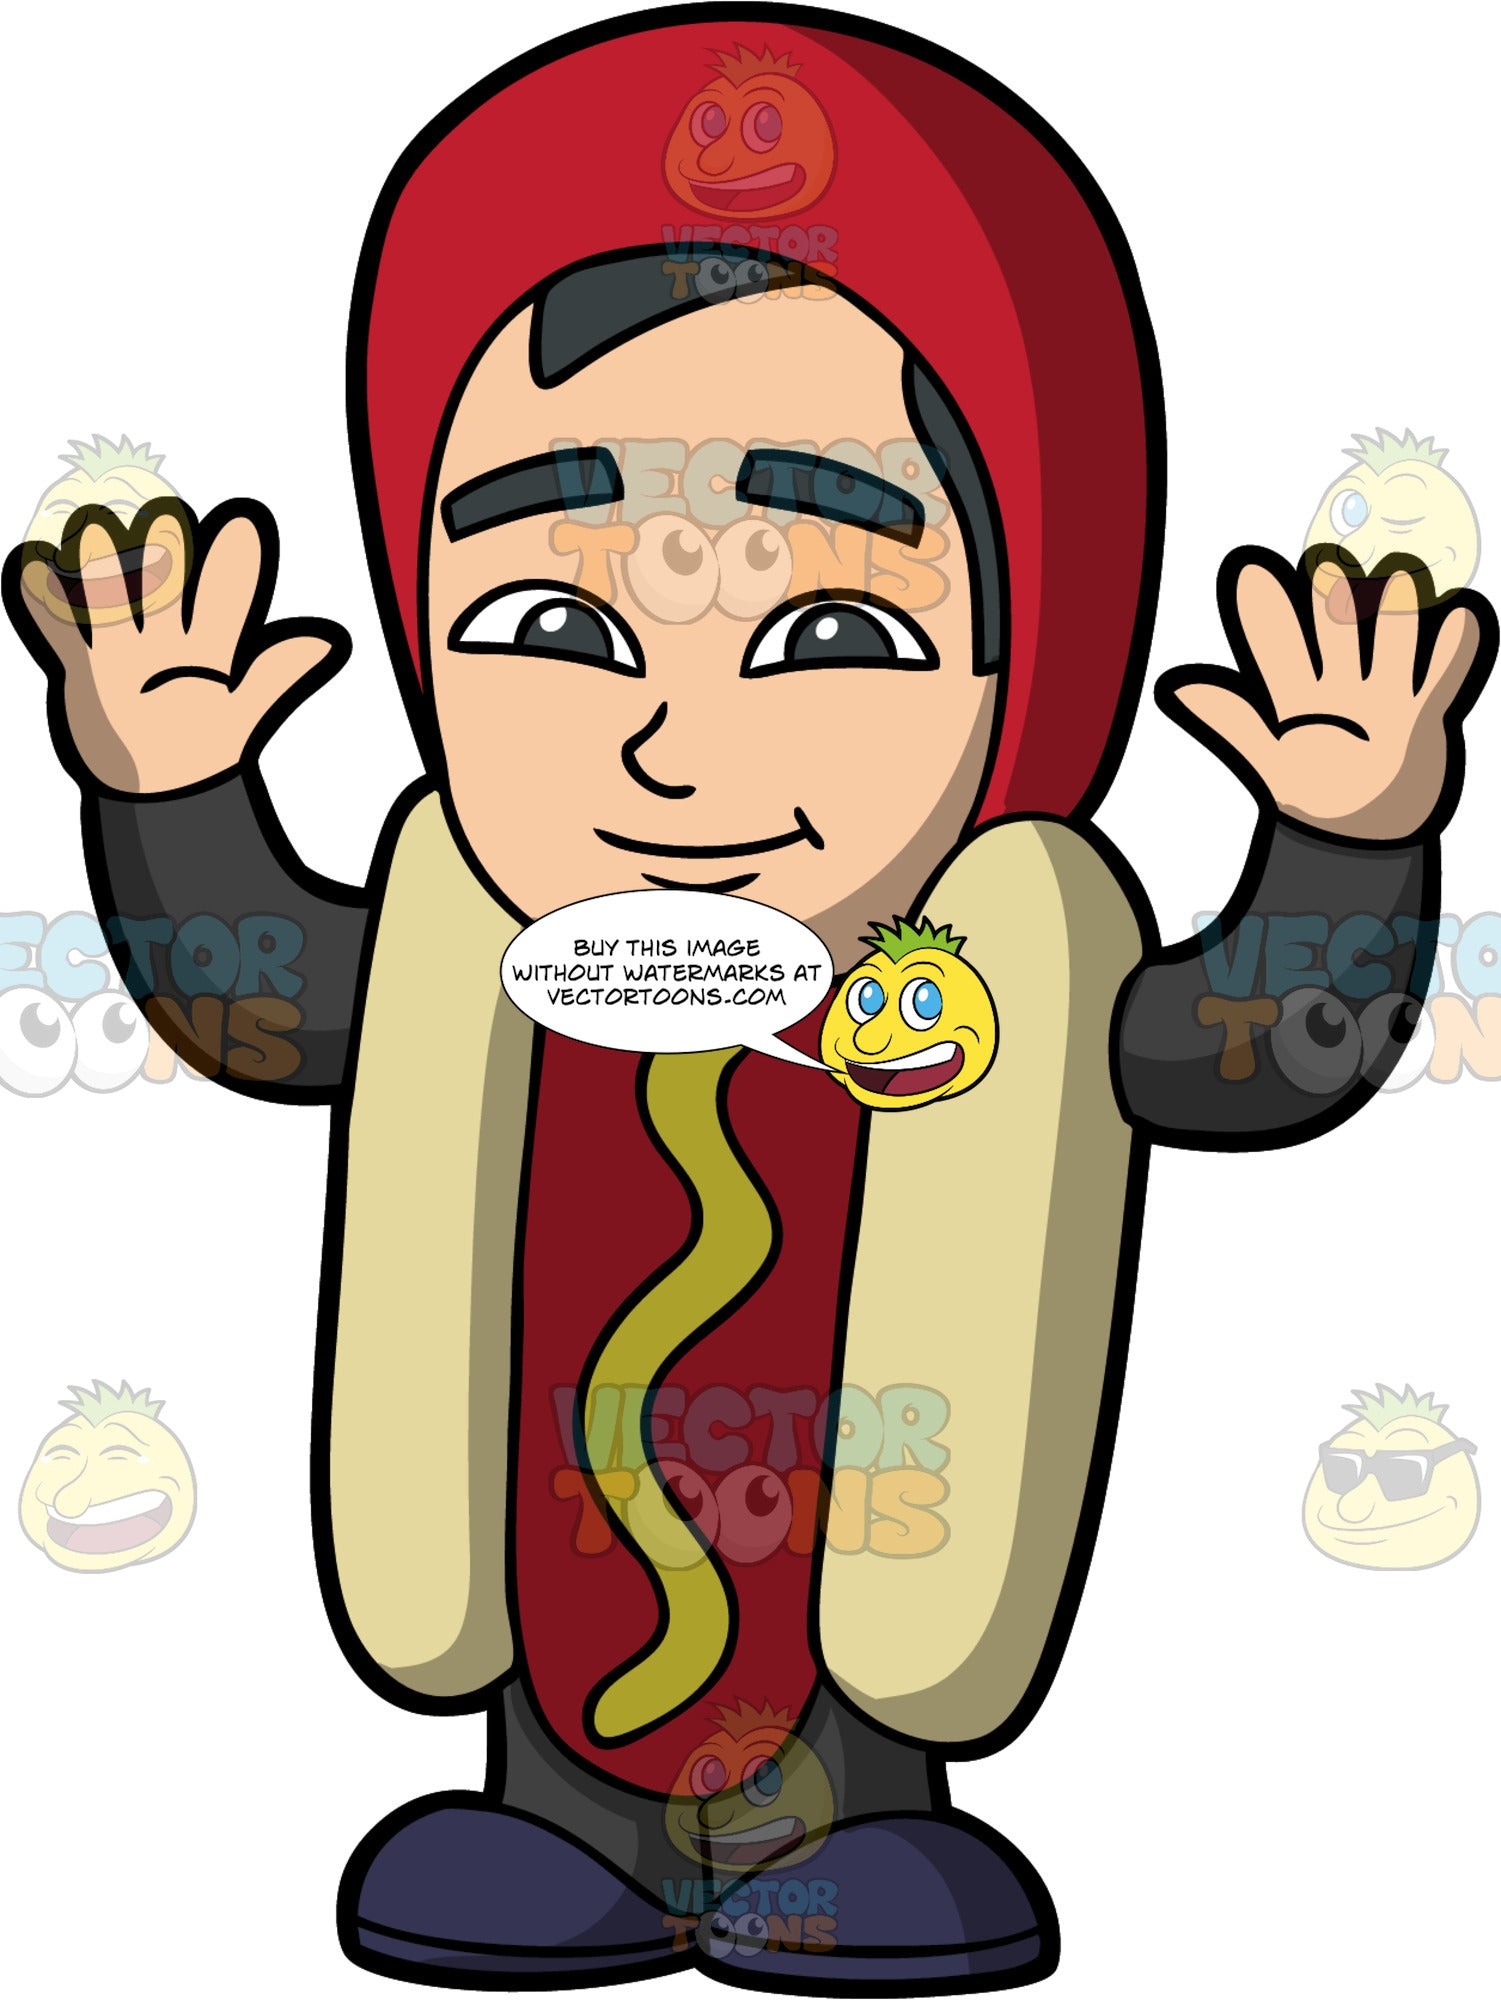 Young Kevin Dressed Up As A Hot Dog. An Asian boy dressed up for Halloween in a full body costume consisting of a bun and sausage with mustard on the sausage